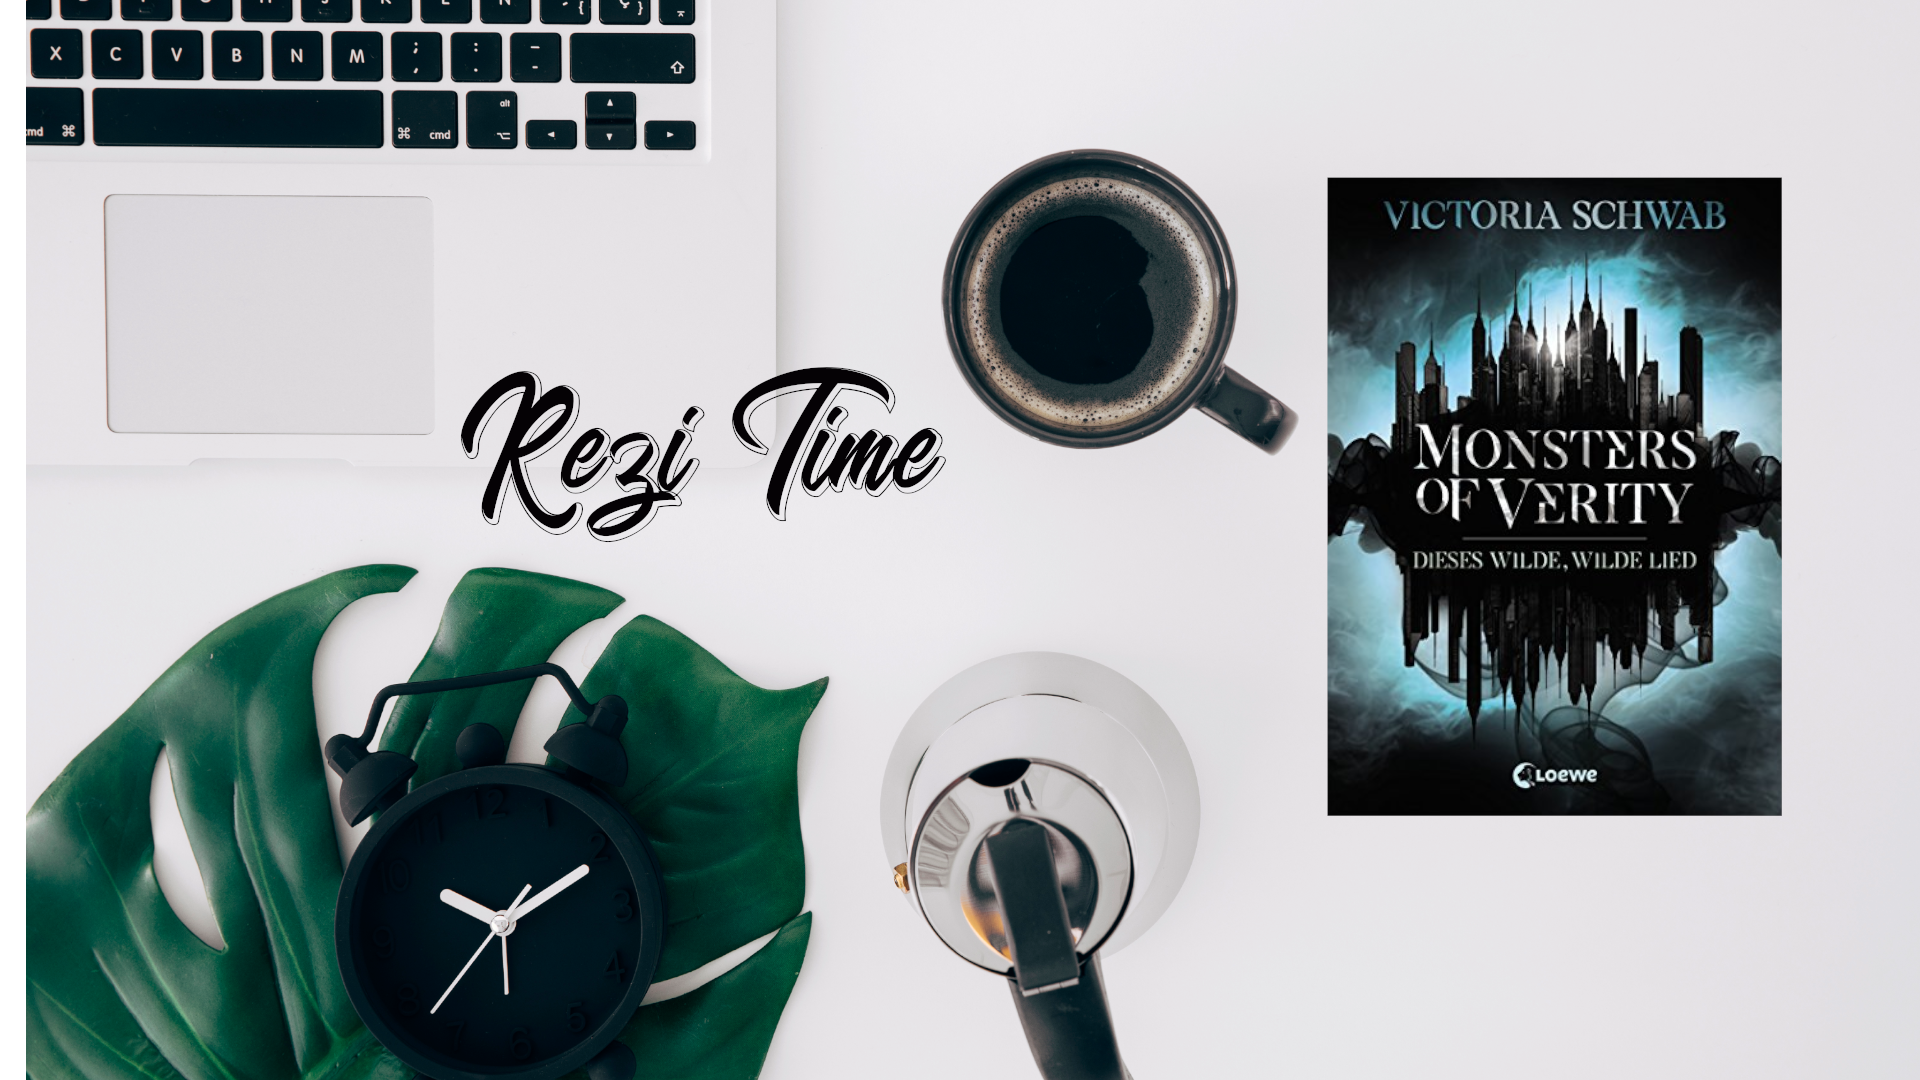 Rezension zu Monsters of Verity – Dieses wilde, wilde Lied – von Victoria Schwab